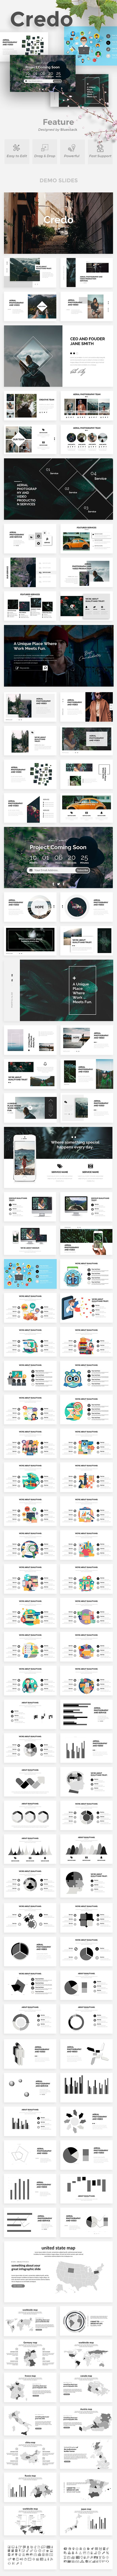 Credo Creative Powerpoint Template | Creative powerpoint, Template ...